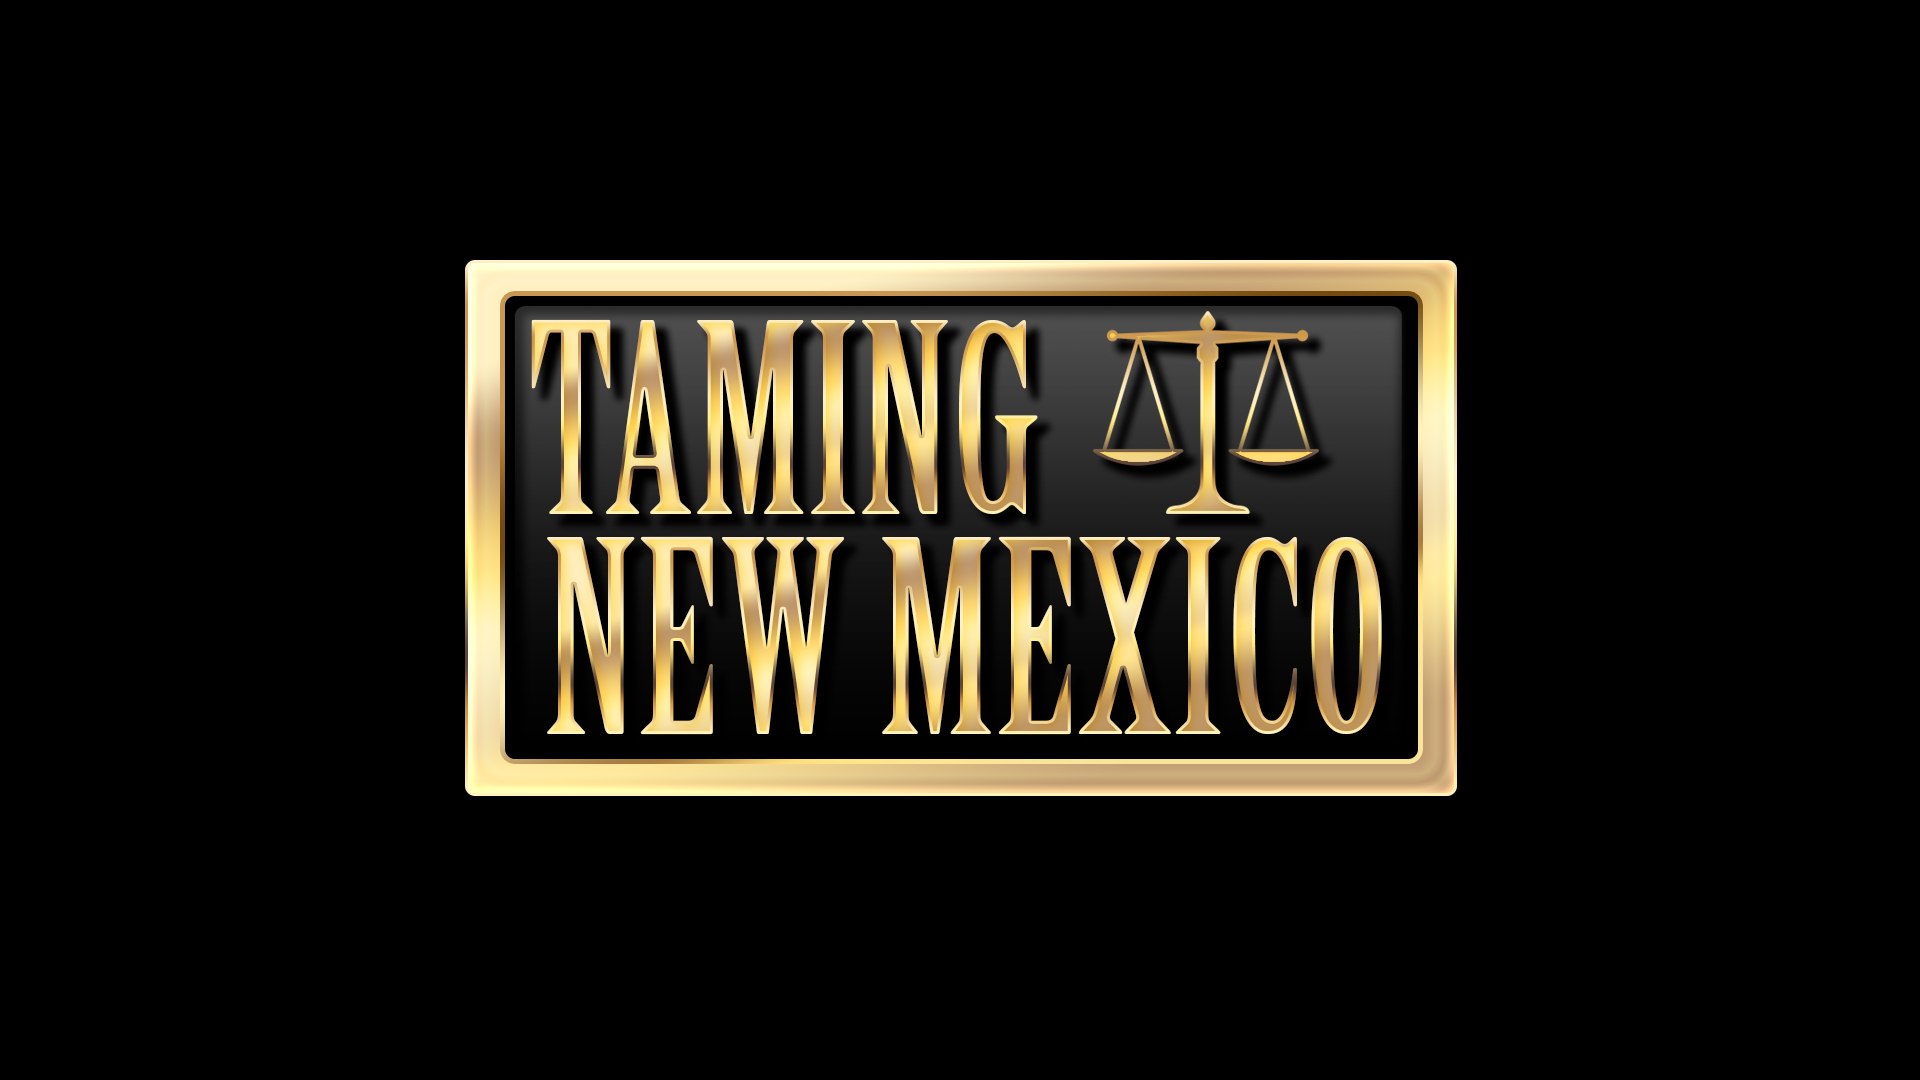 taming new mexico - new mexico pbs, knme-tv